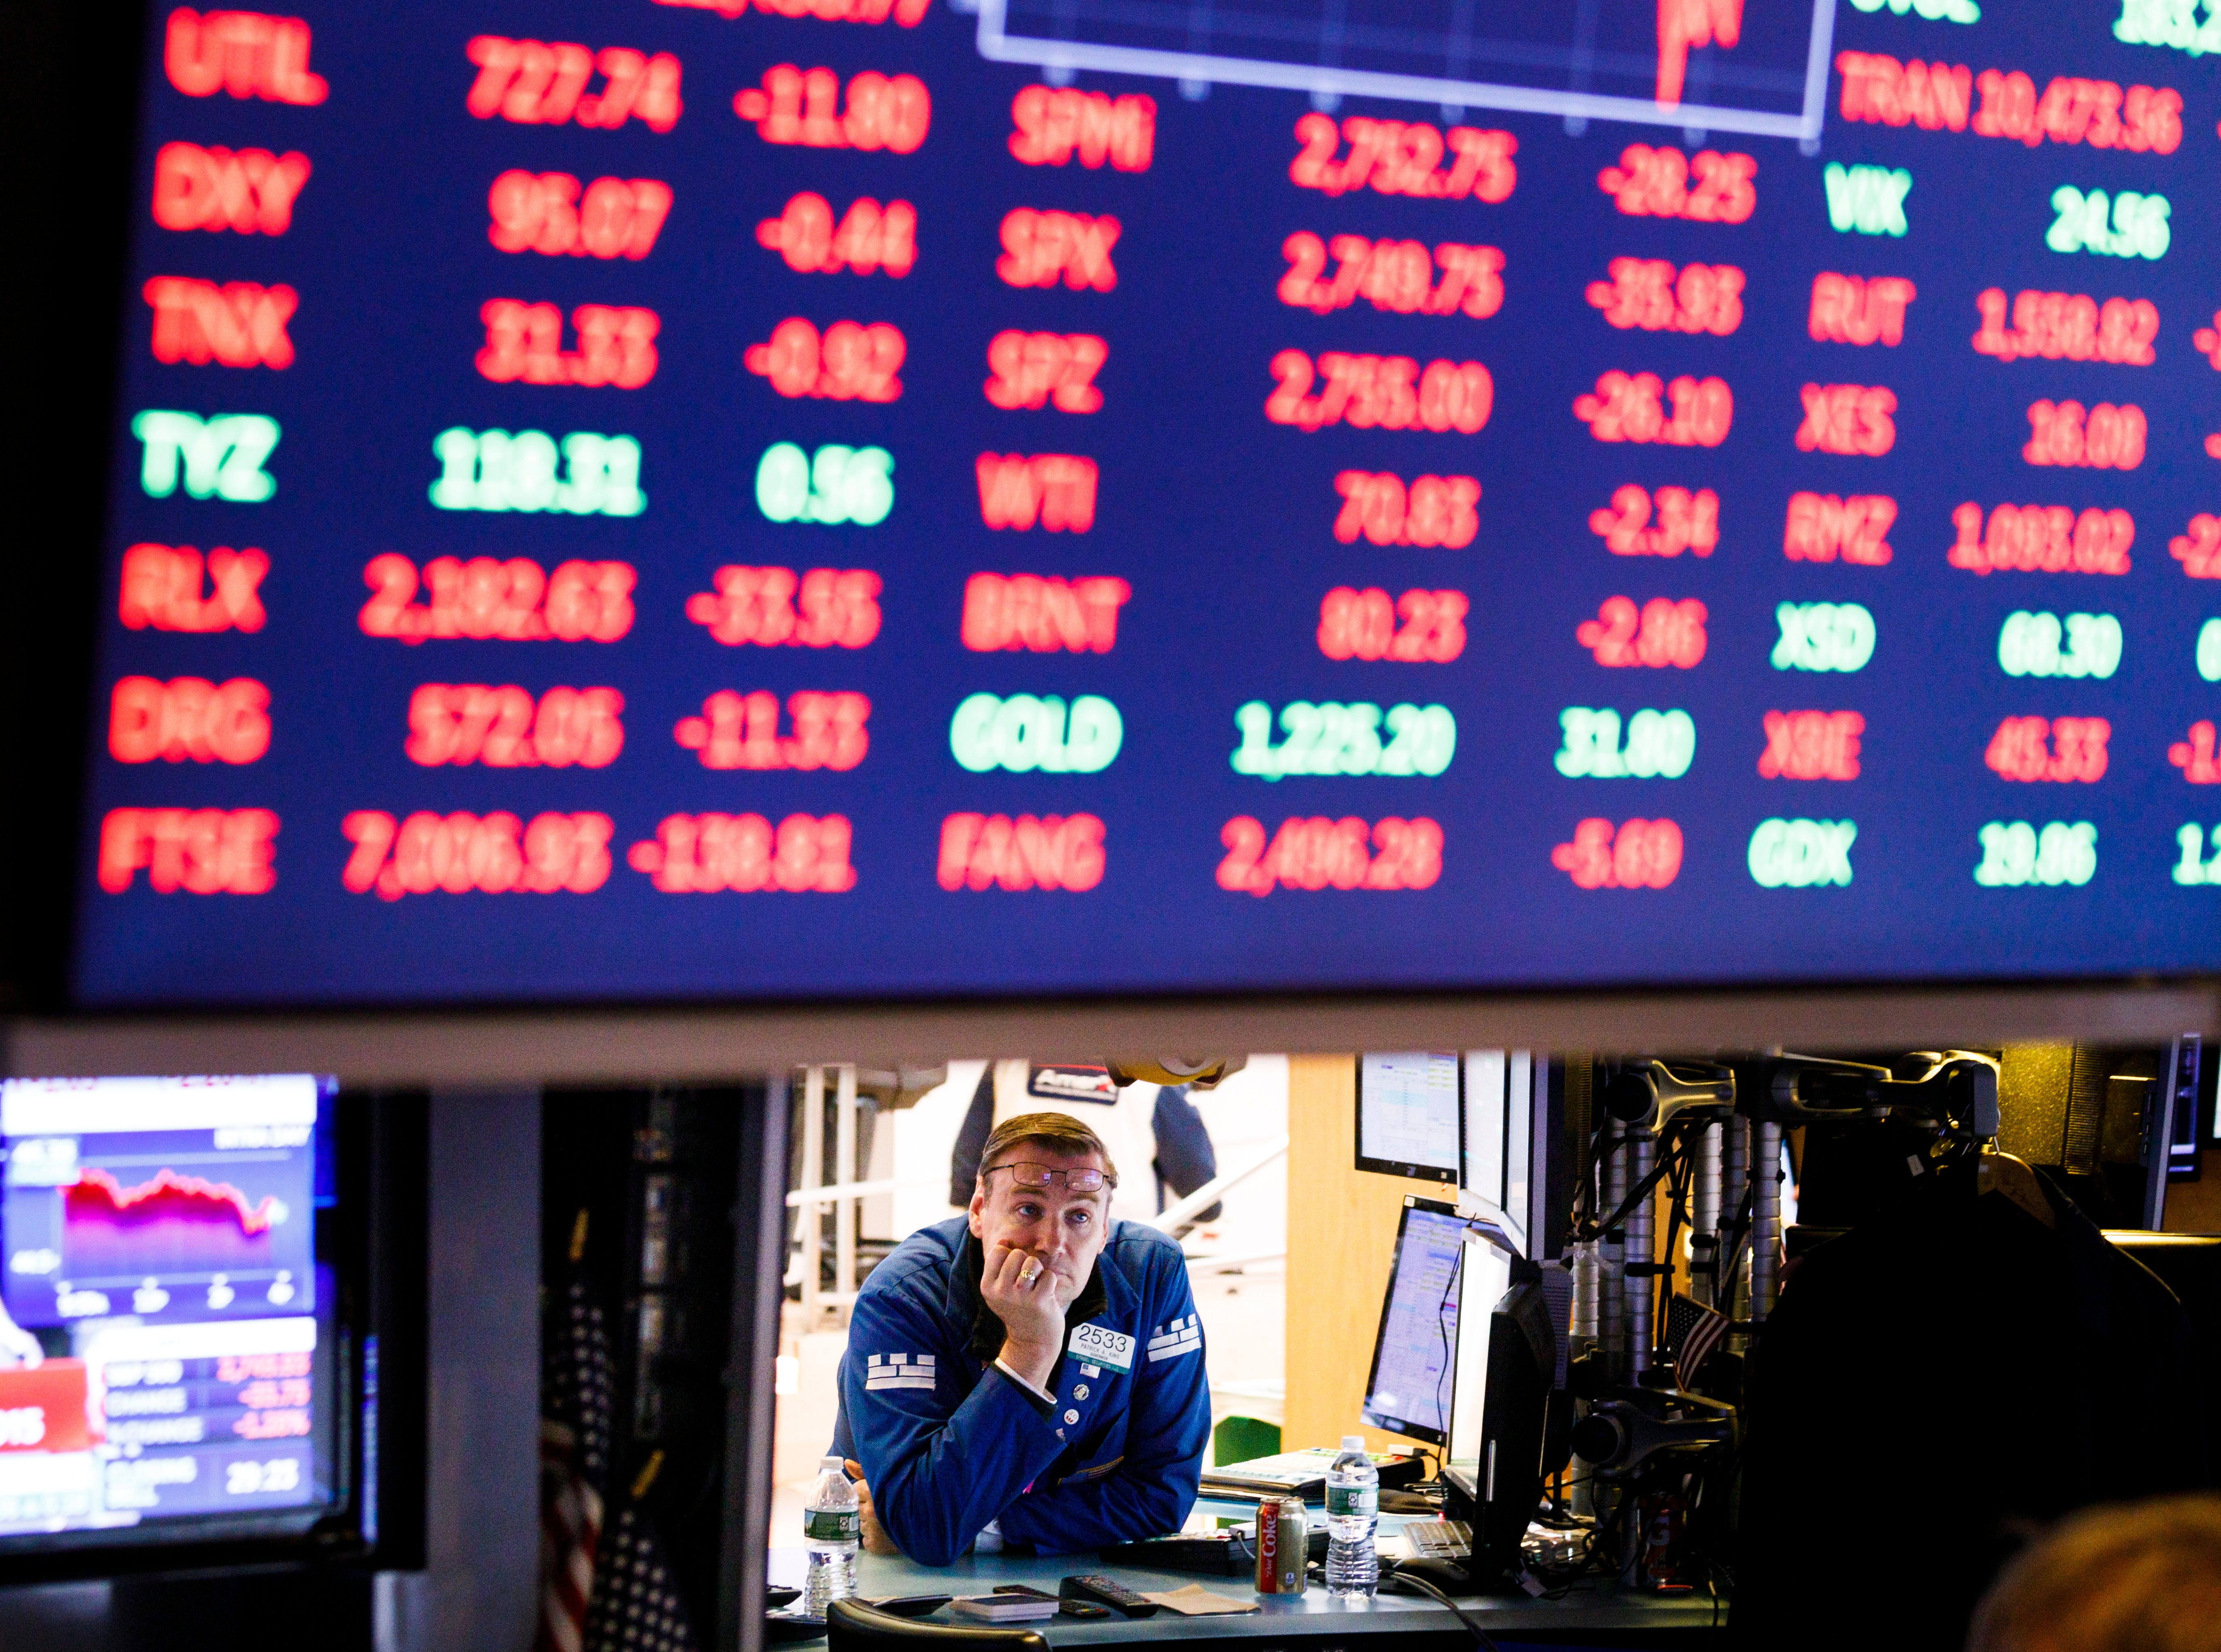 Stock market rebounds, powered by earnings that ease fears over health of economy